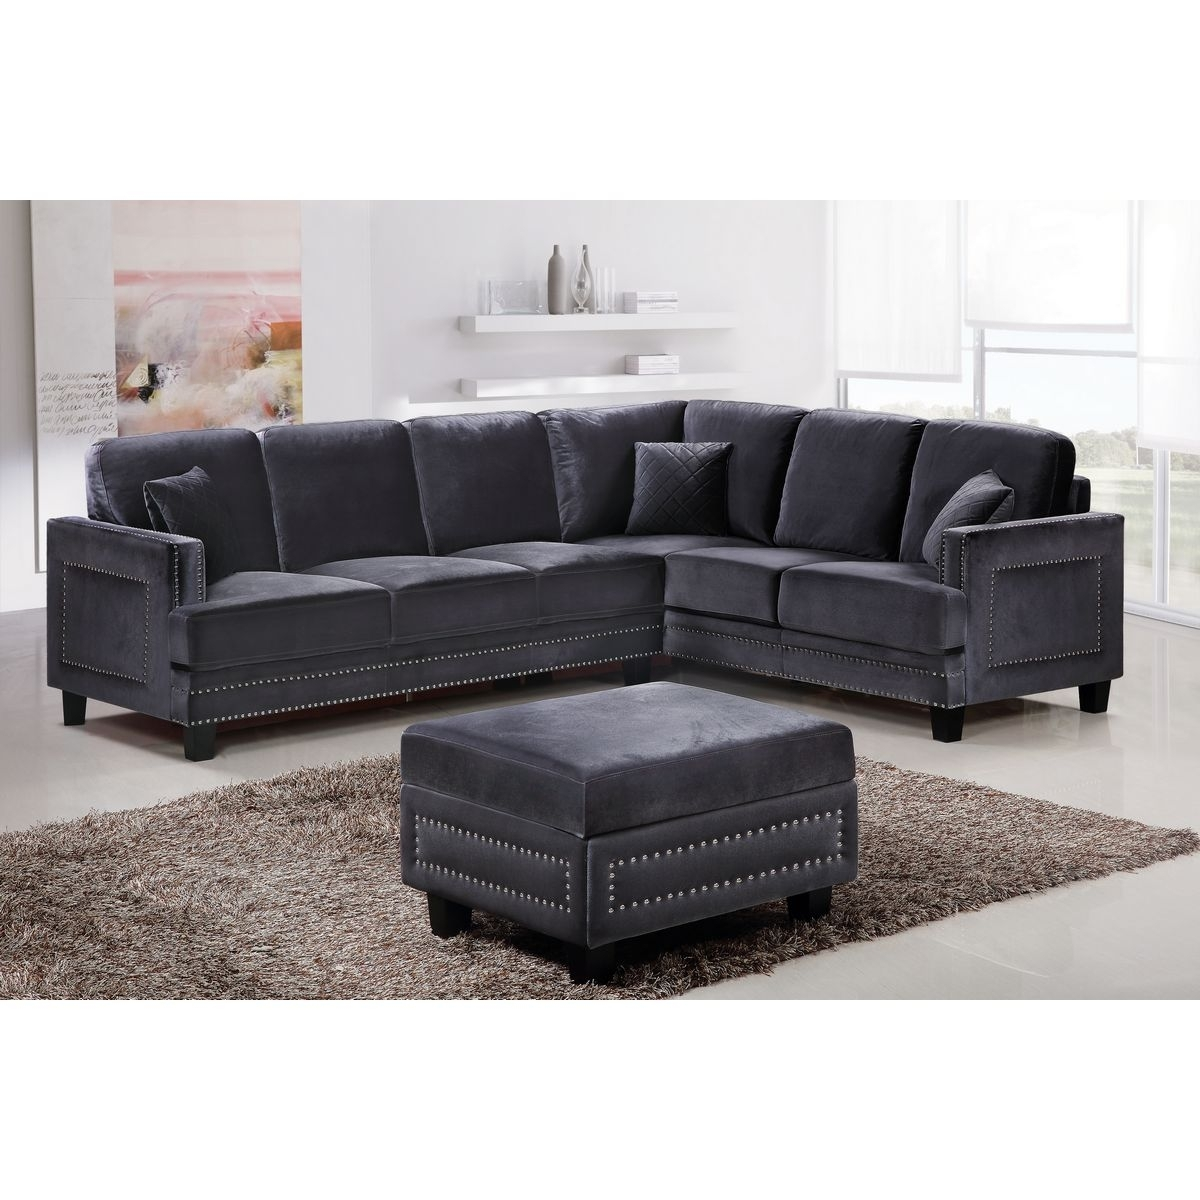 Sectional Sofa With Nailhead Trim Meridian Furniture 655Gry Ferrara With Sectional Sofas With Nailhead Trim (Image 7 of 10)